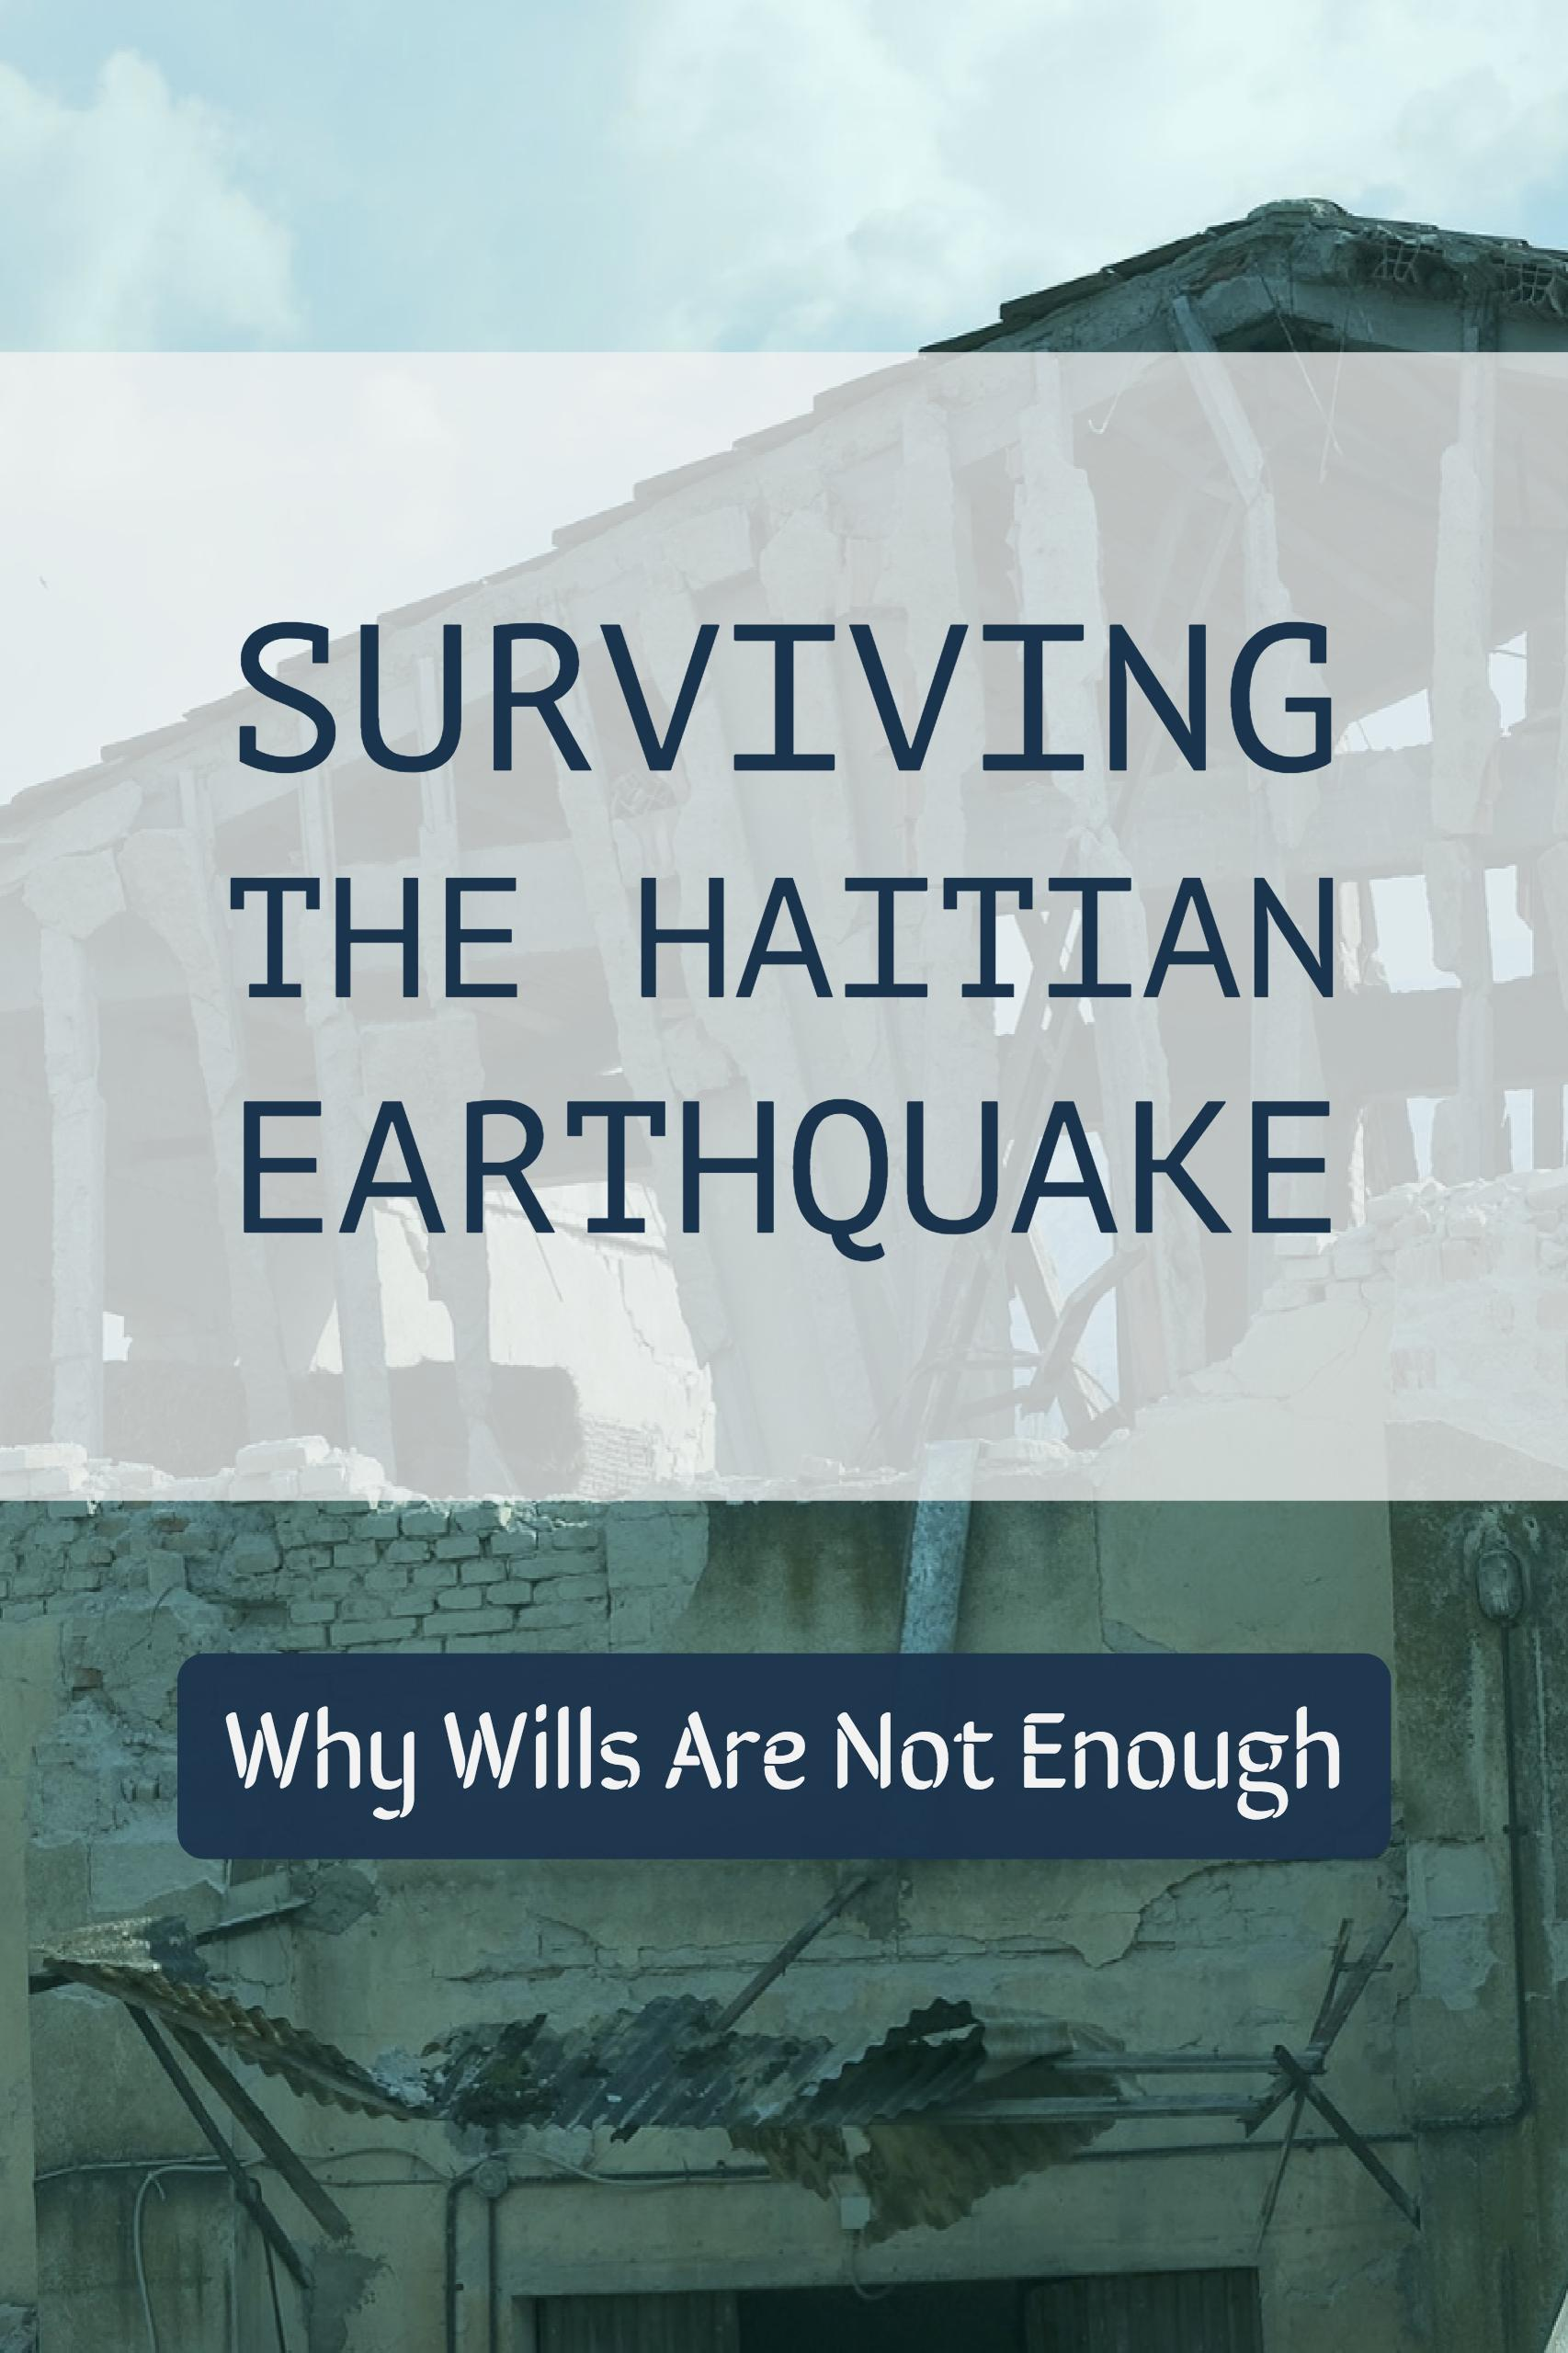 Surviving the Haitian Earthquake and Why Wills Are Not Enough